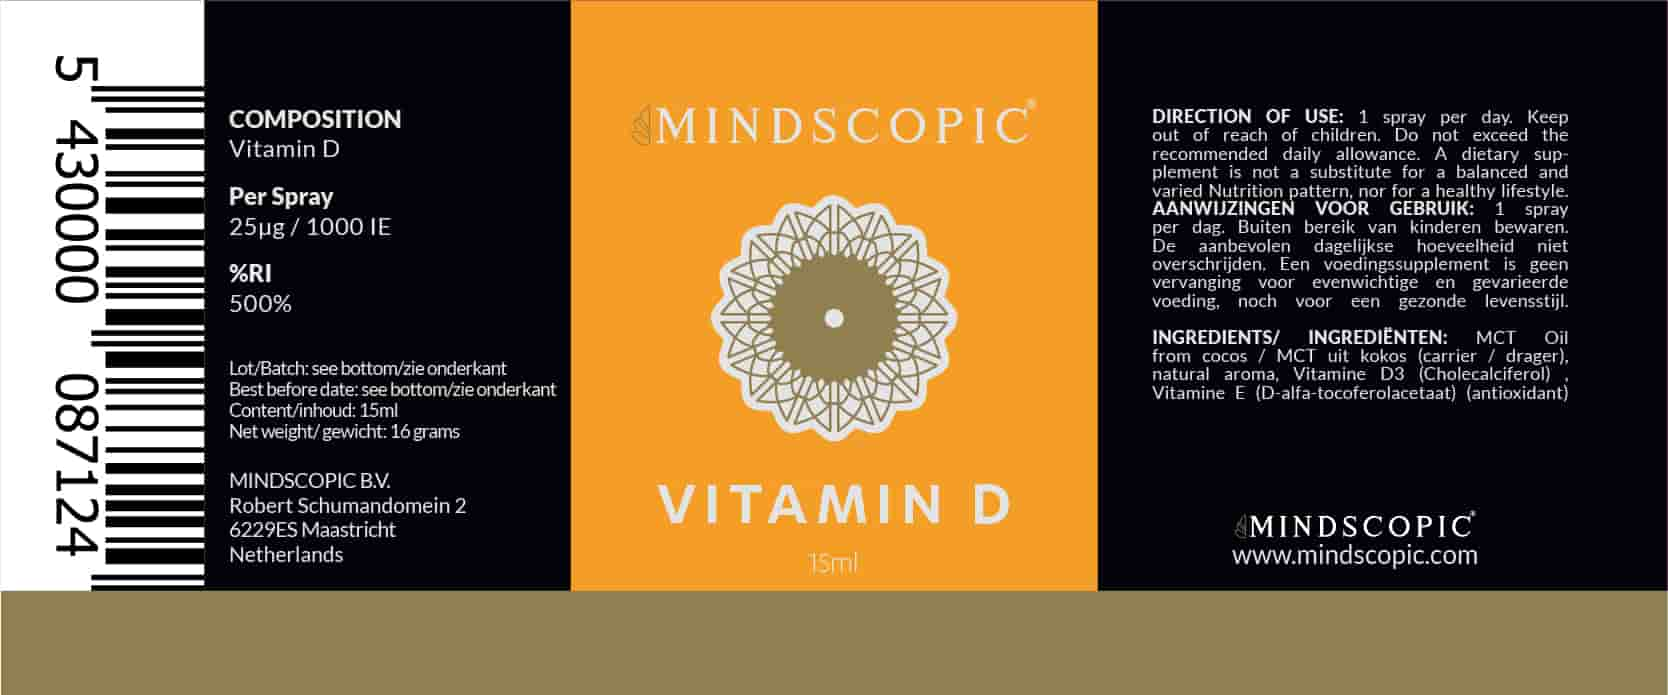 Mindscopic Vitamin D ingredients